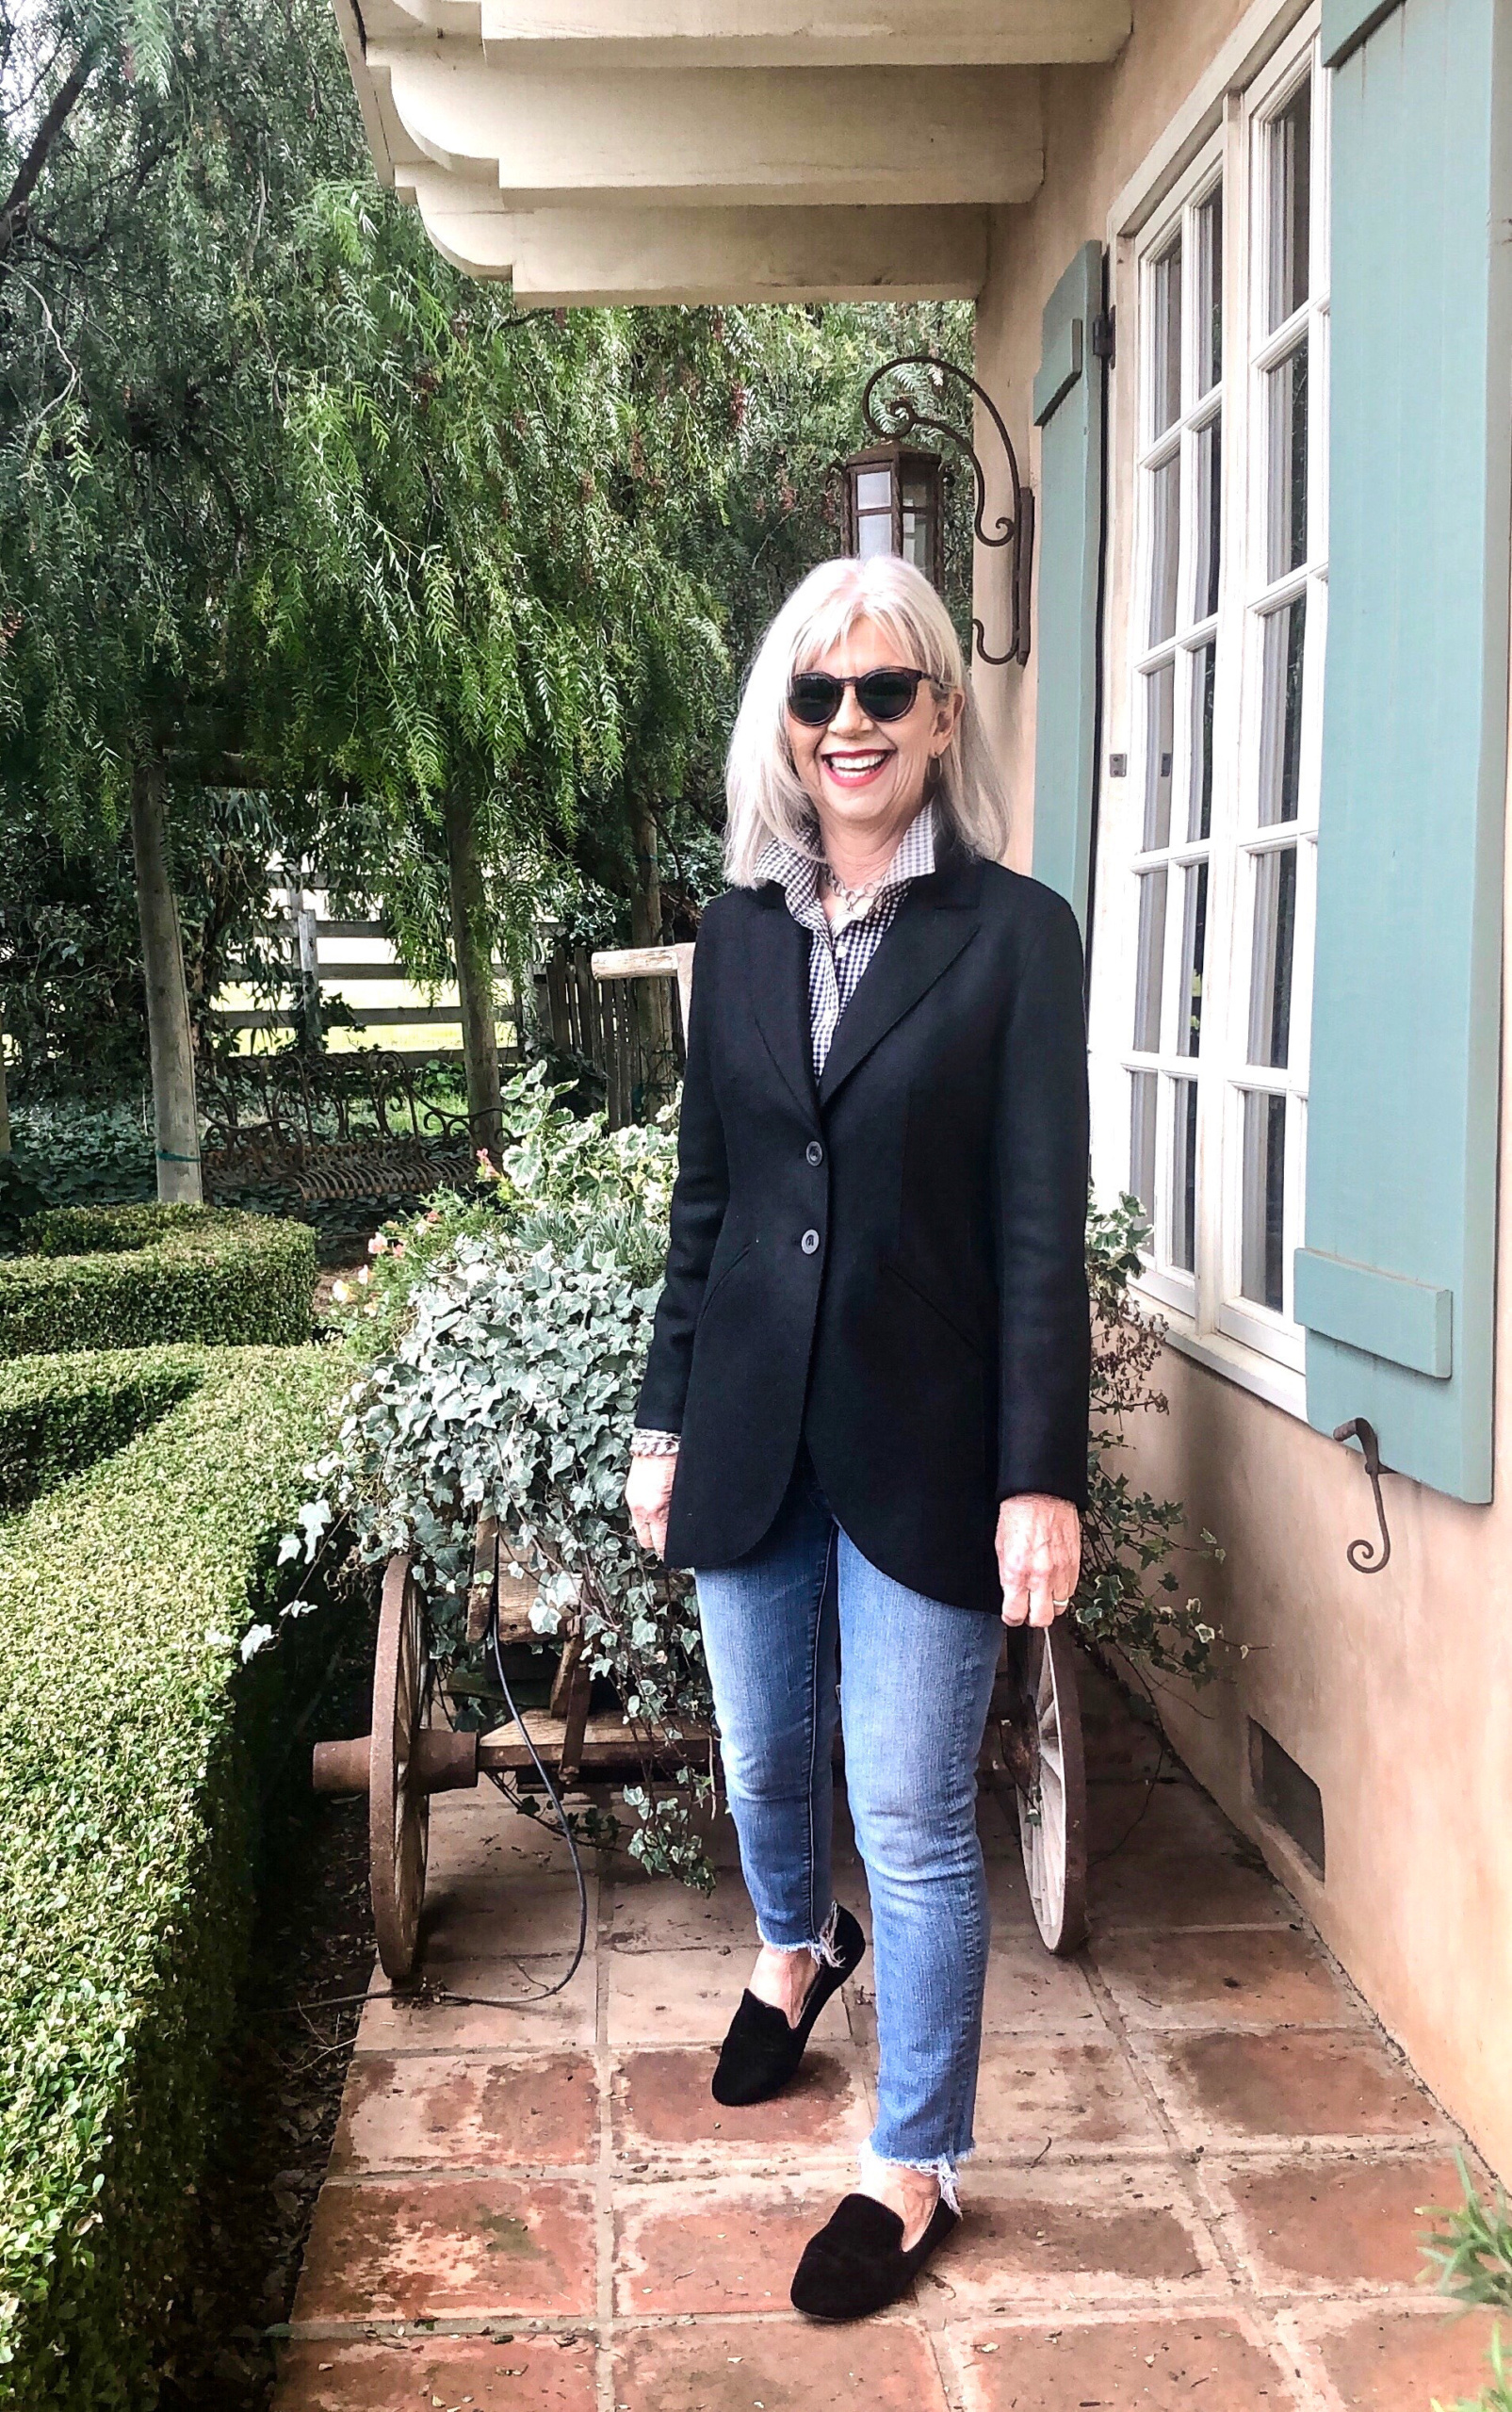 cindy hattersley in Peruvian Connection Black Blazer and Jeans